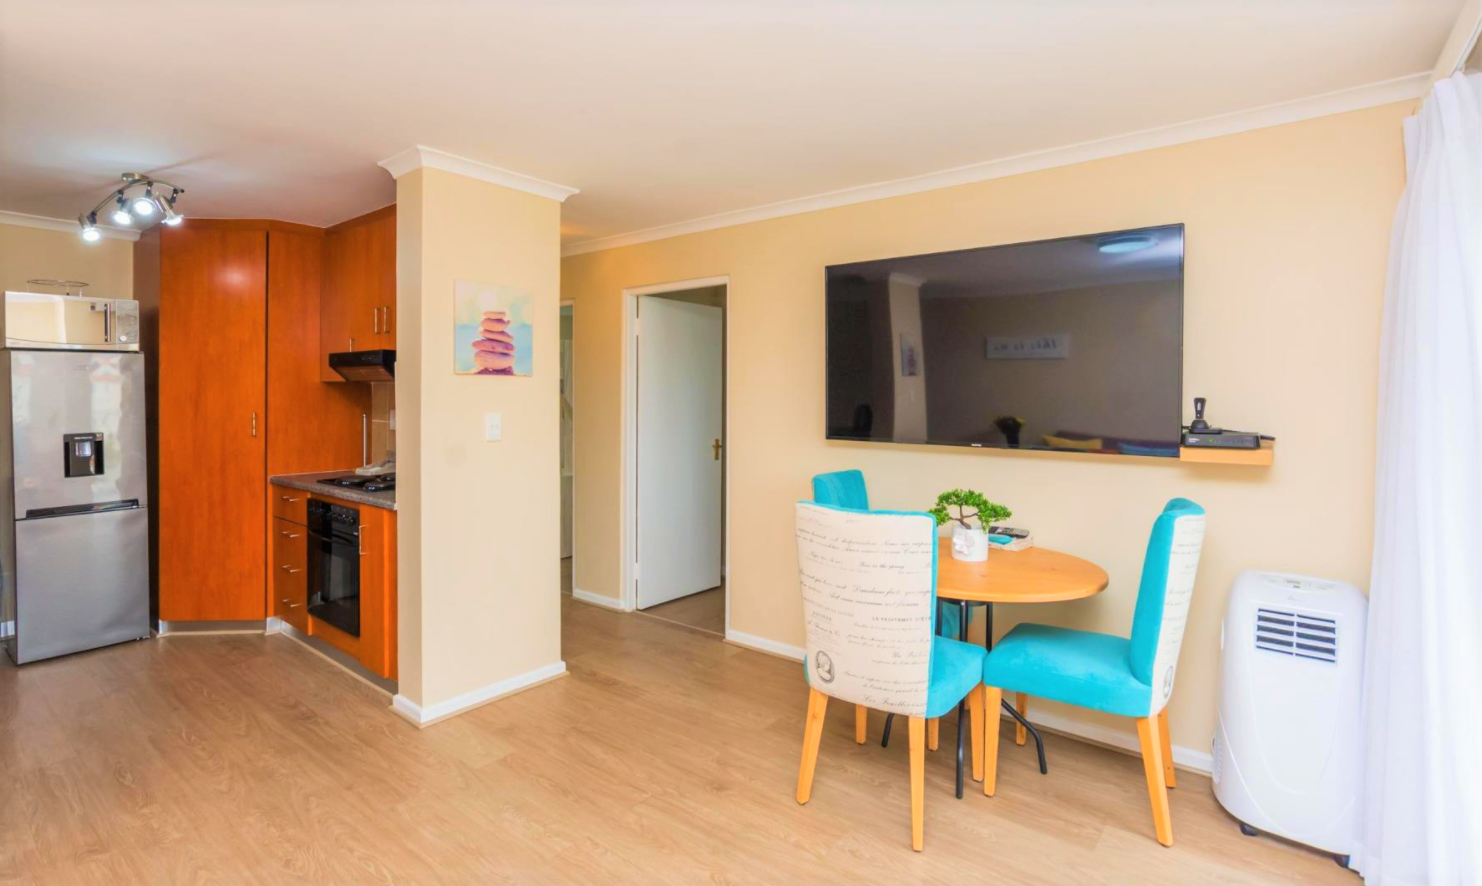 2 Bedroom Apartment / Flat For Sale in Whispering Pines